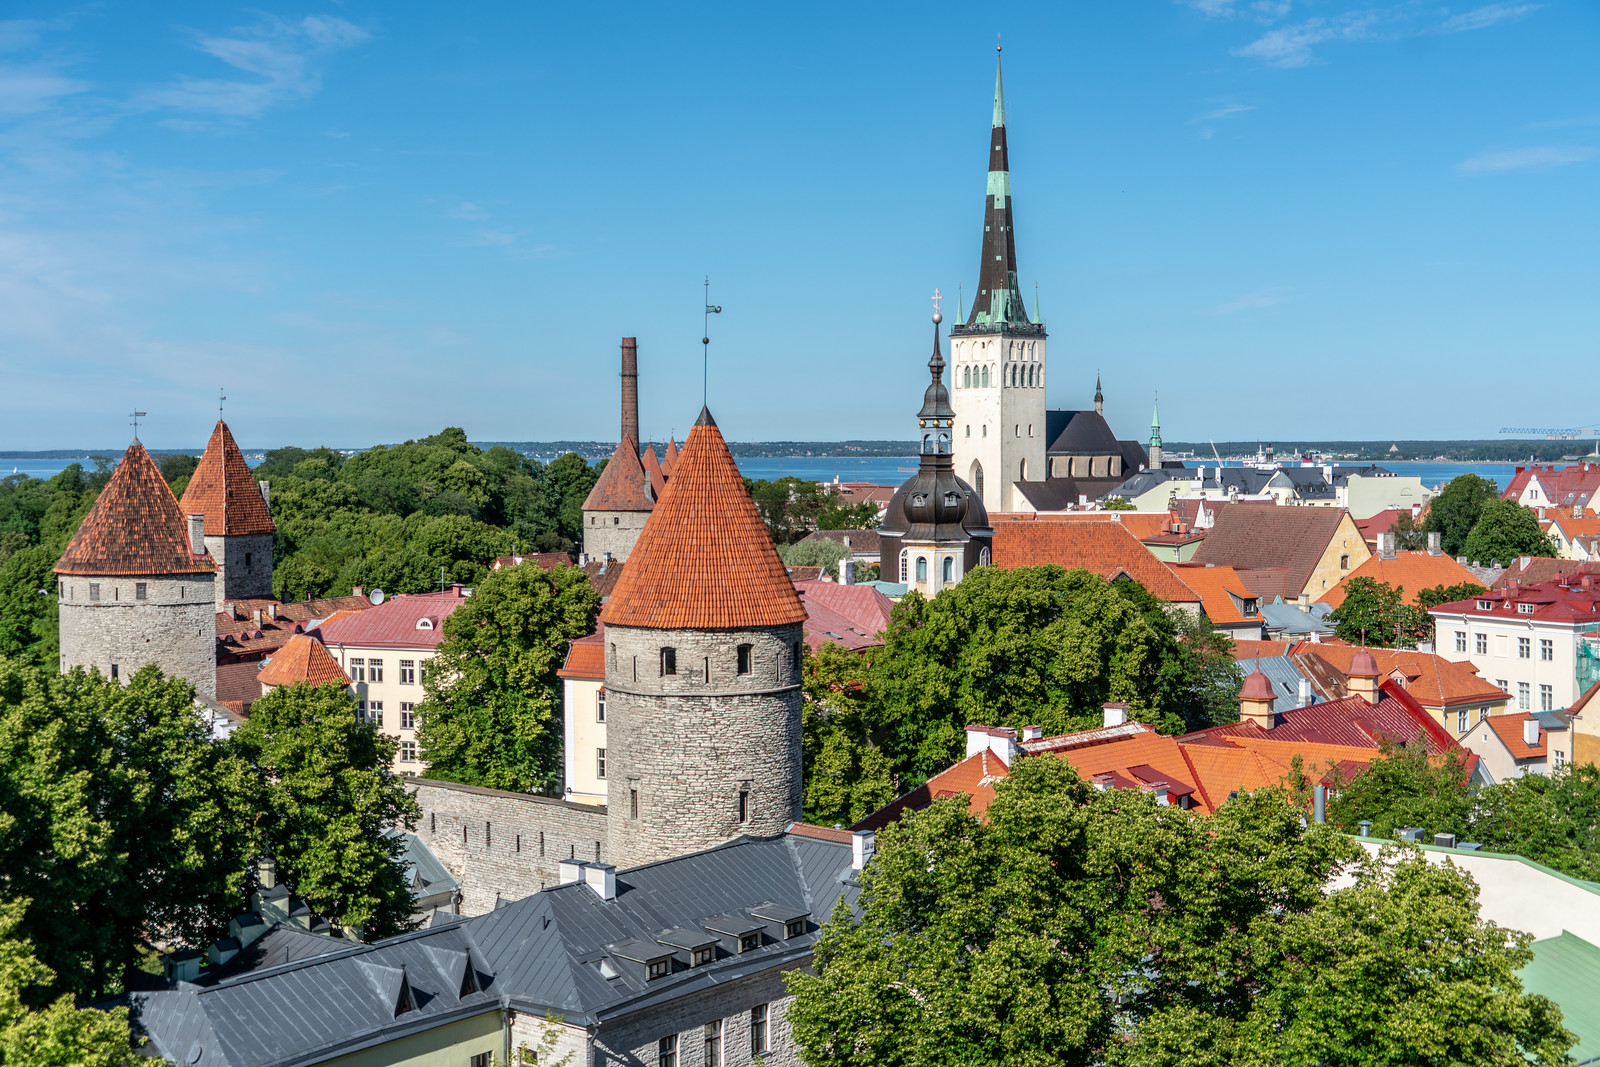 Historic Center (Old Town) of Tallinn, Estonia